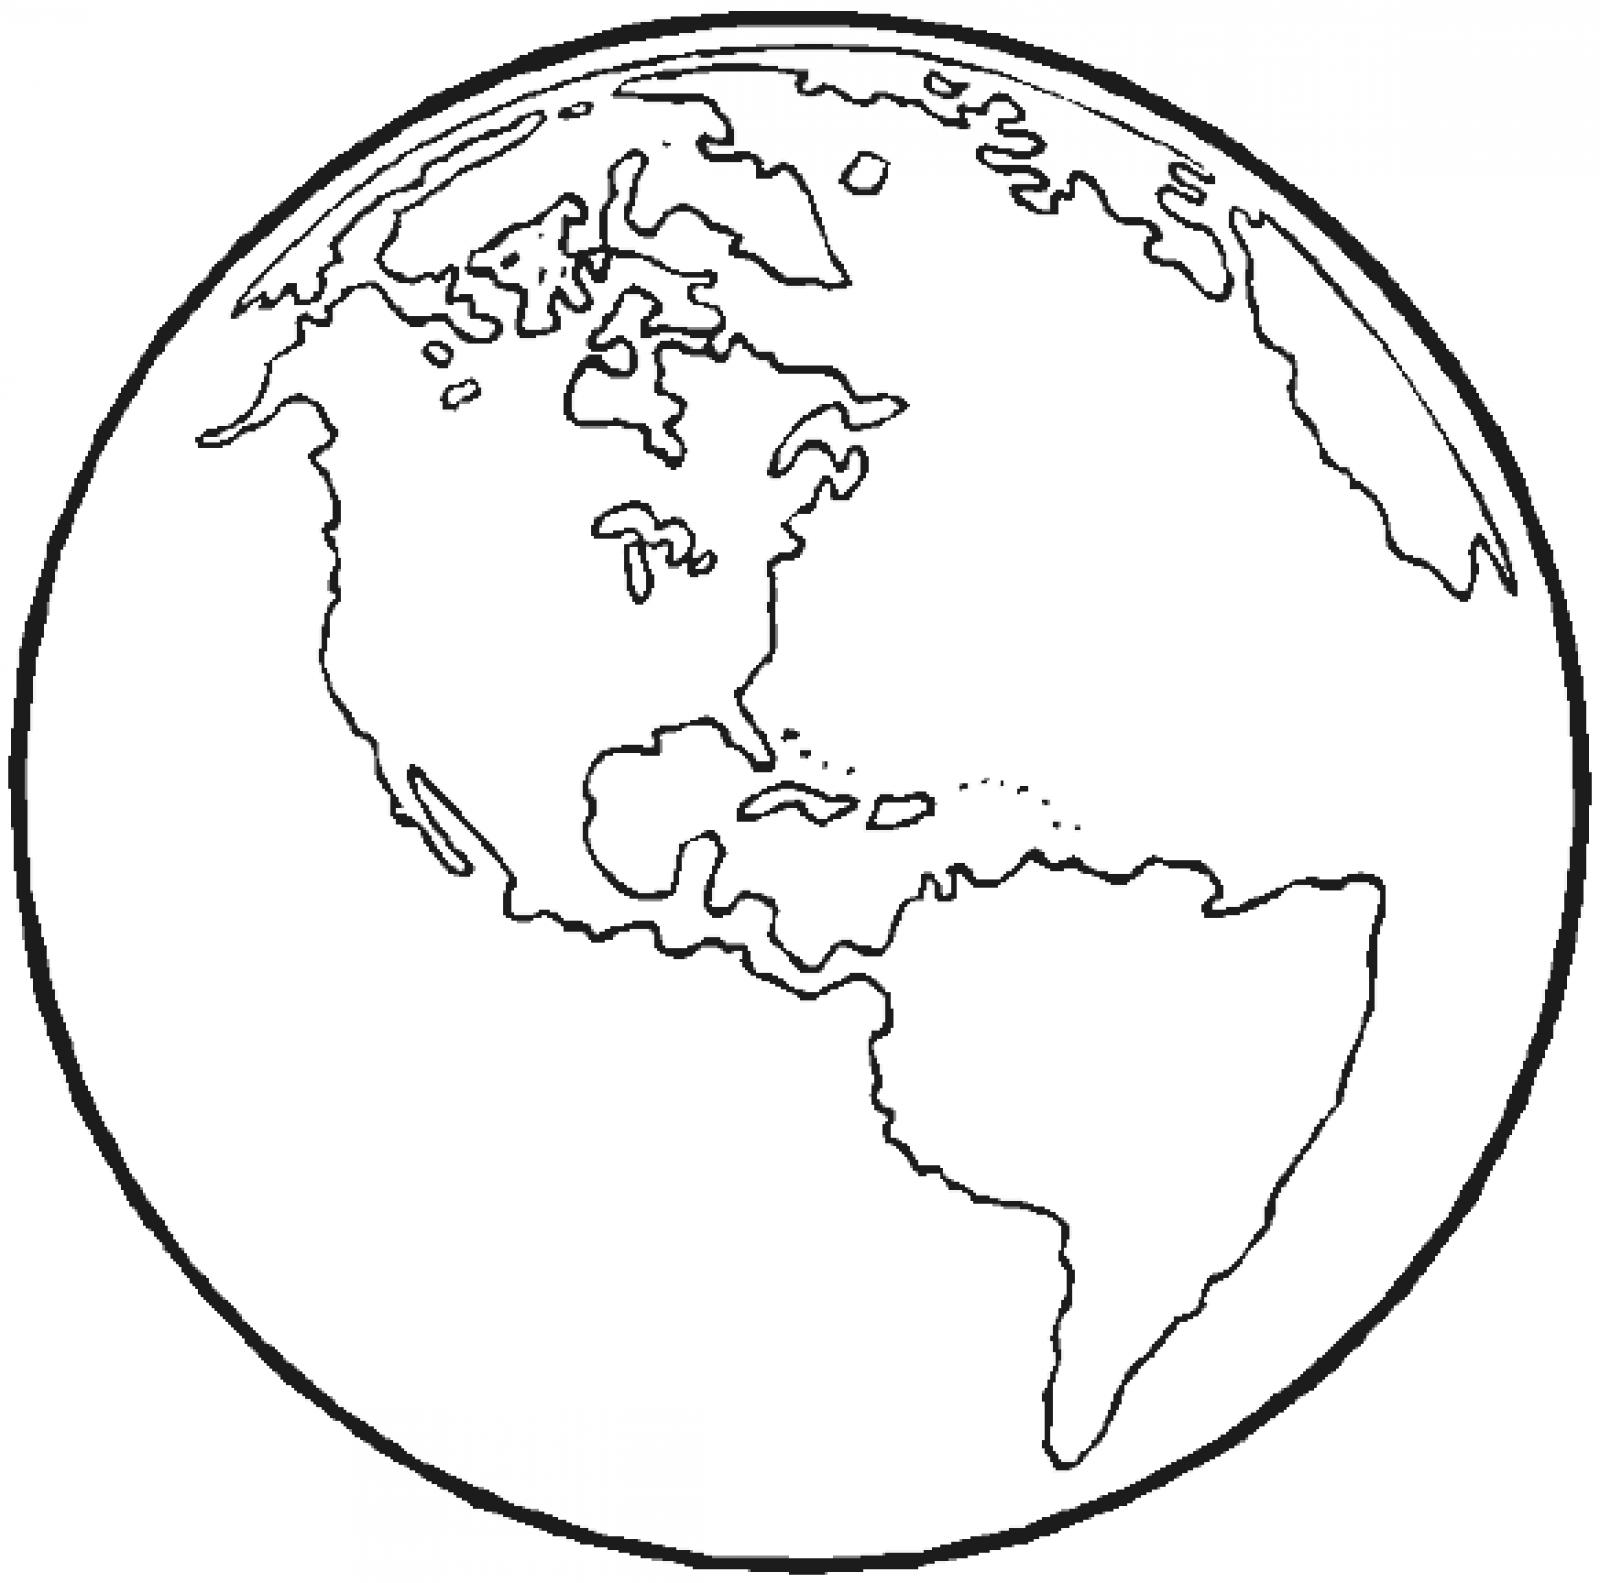 coloring page earth earth coloring pages to download and print for free earth page coloring